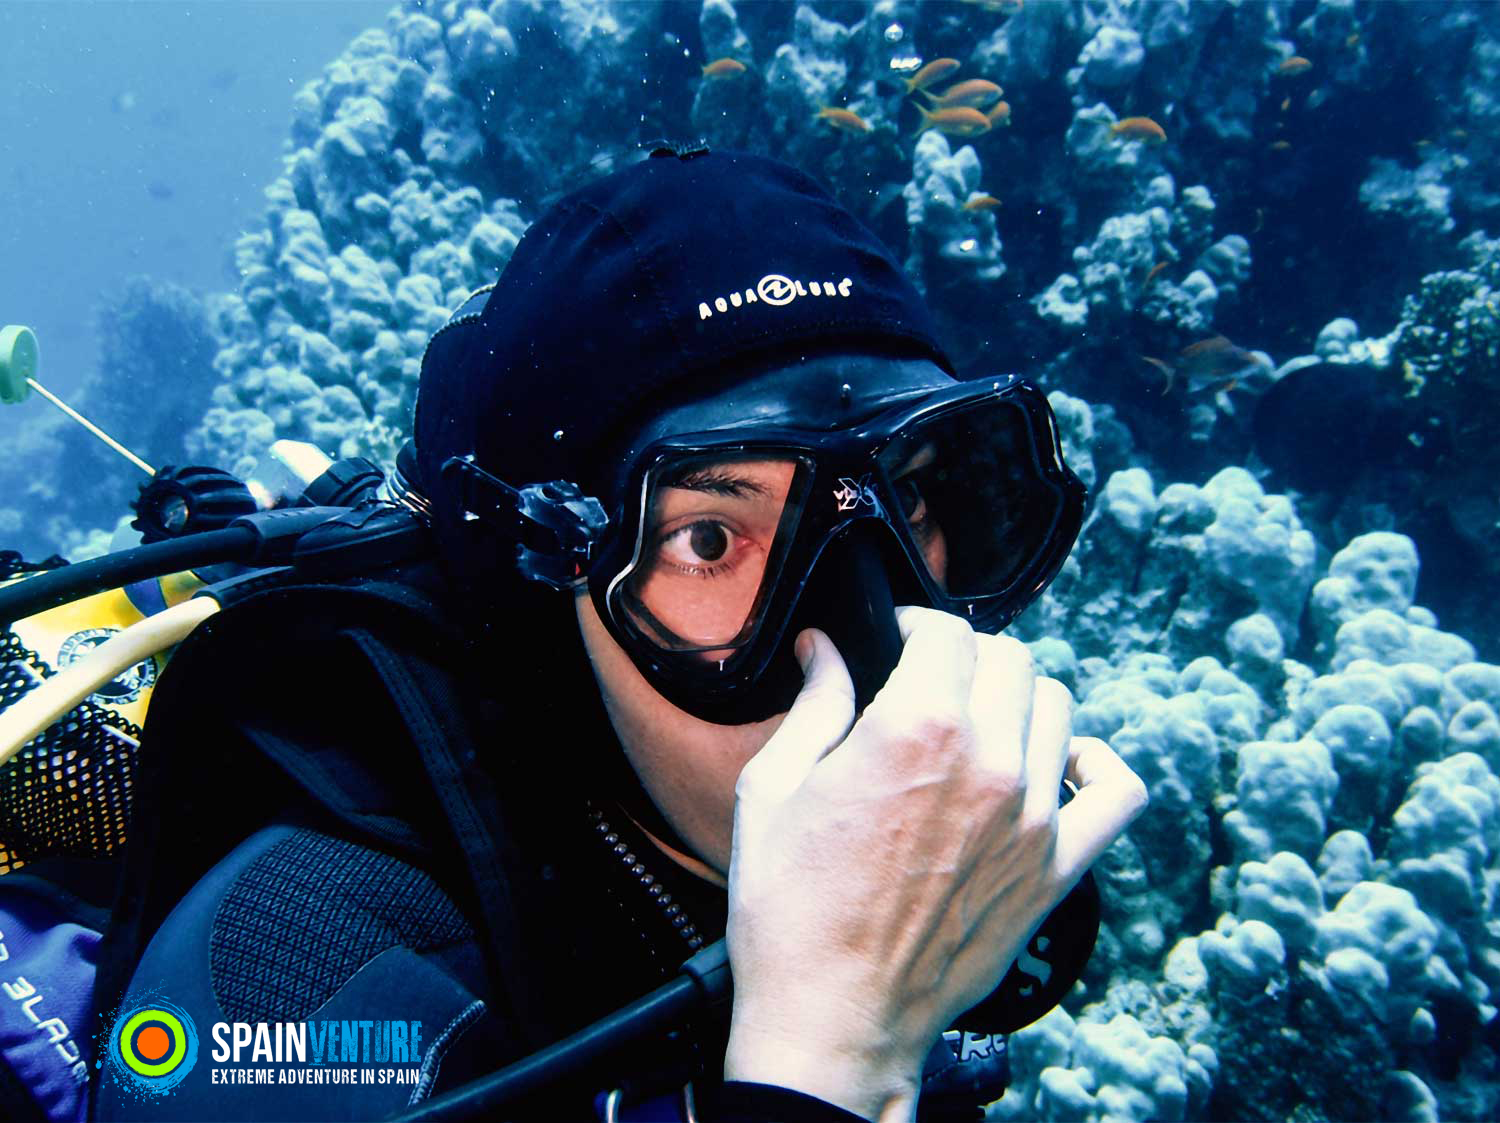 spainventure-consejos-de-buceo-para-principiantes-fuengirola-dive-in-la-costa-del-sol diving tips for beginners